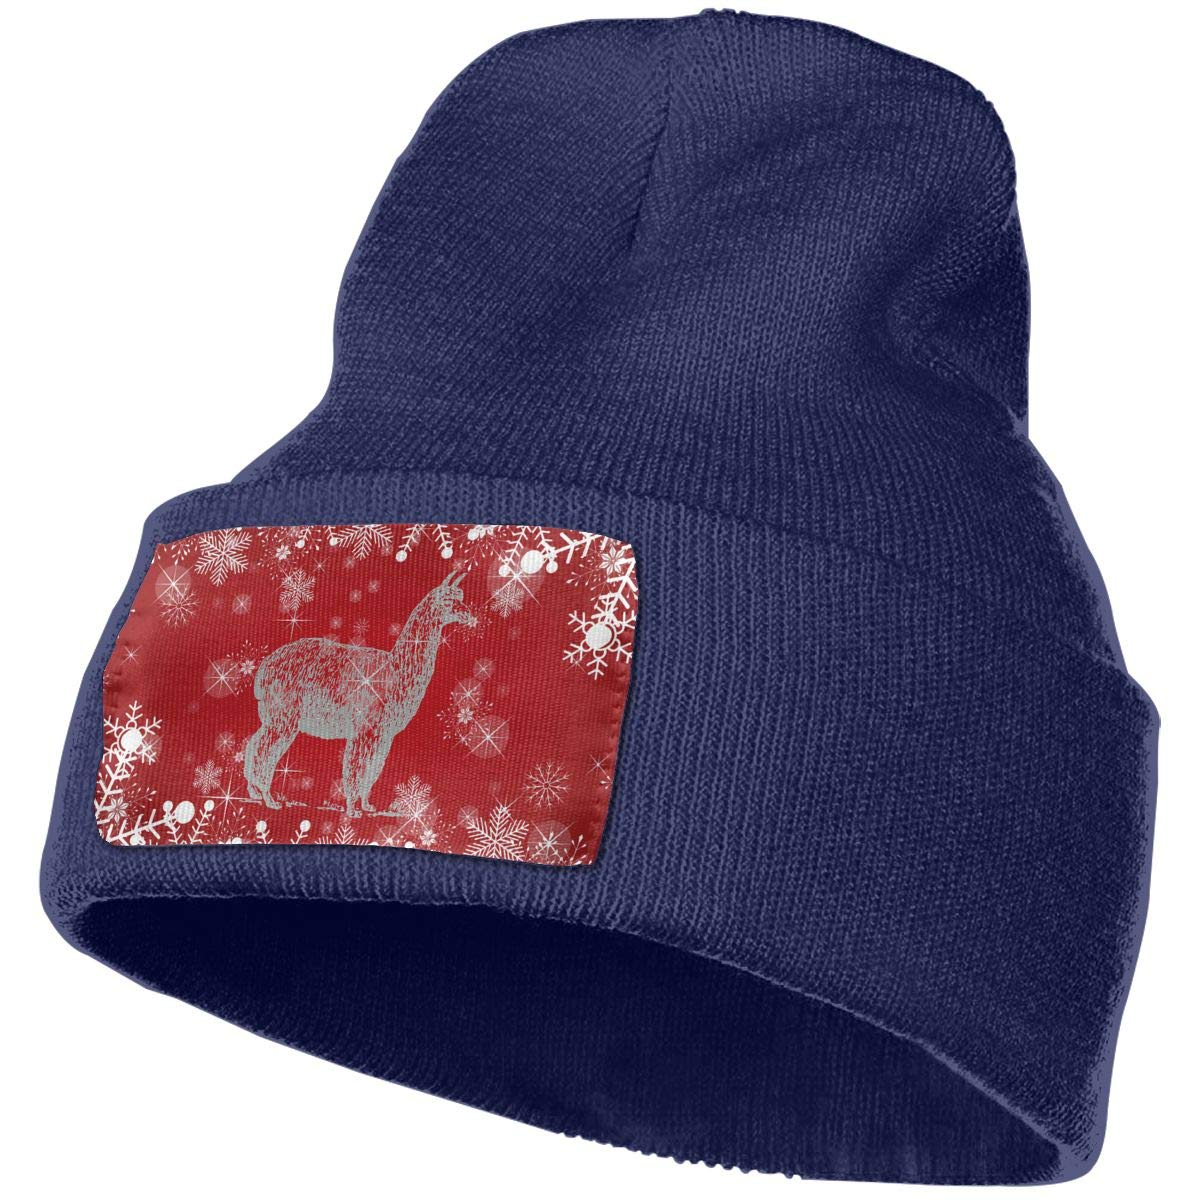 Alpaca Llama-3 Men Women Knit Hats Stretchy /& Soft Beanie Cap Hat Beanie